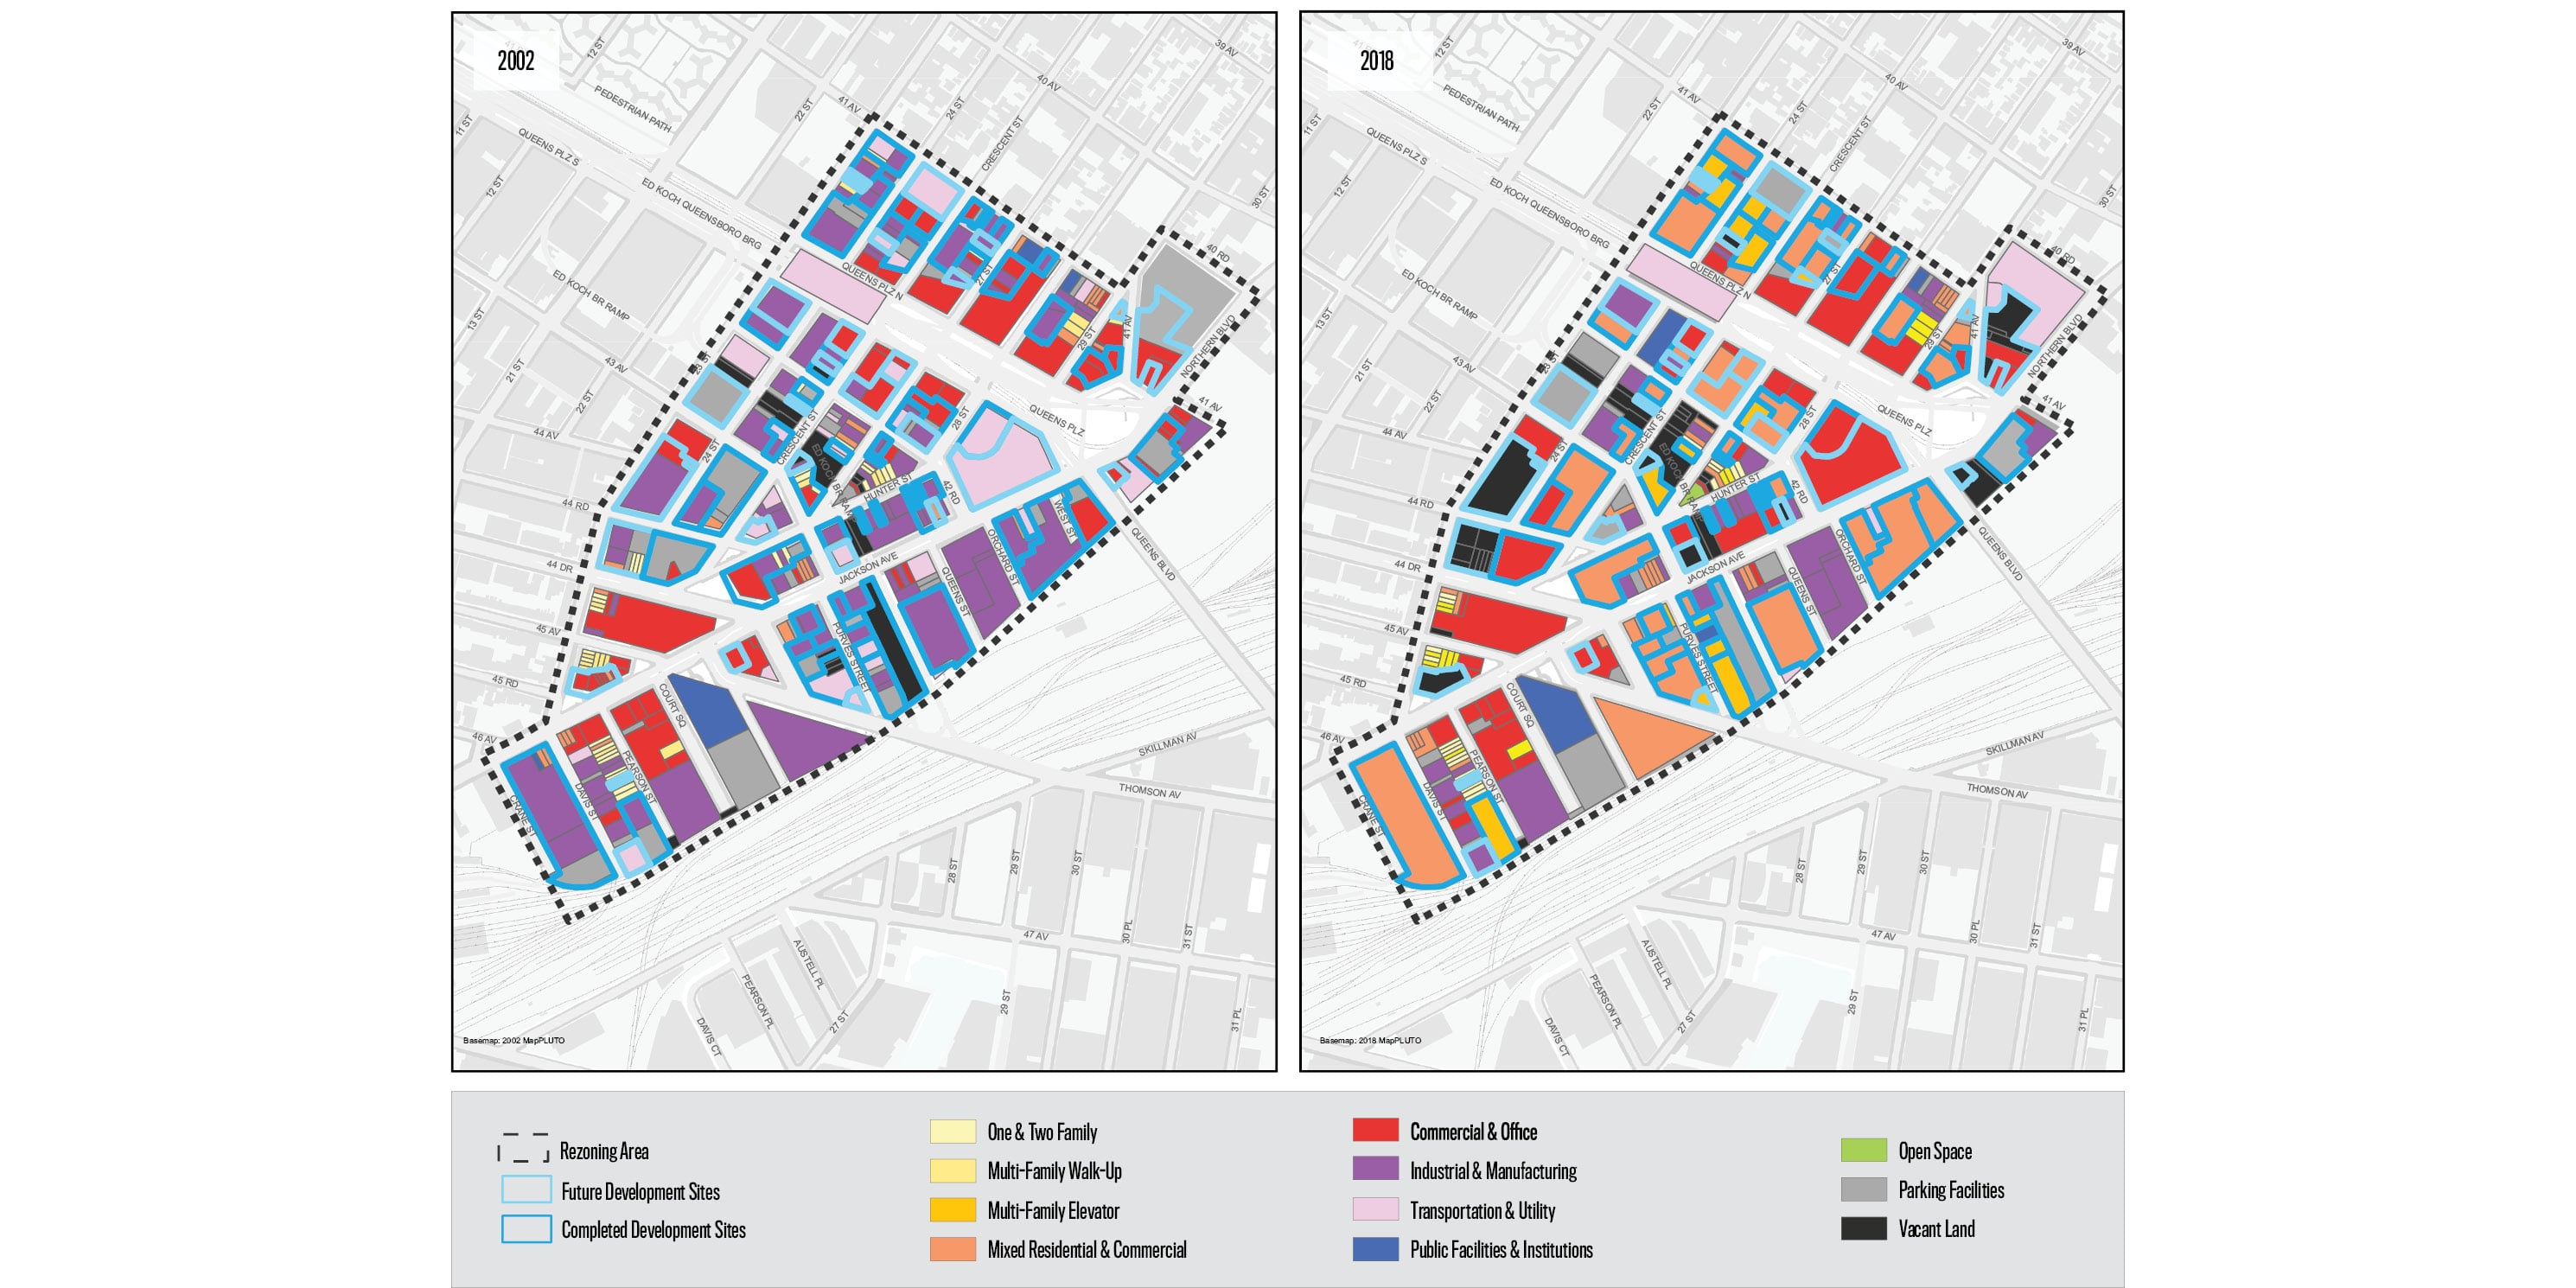 map showing land use in Long Island City